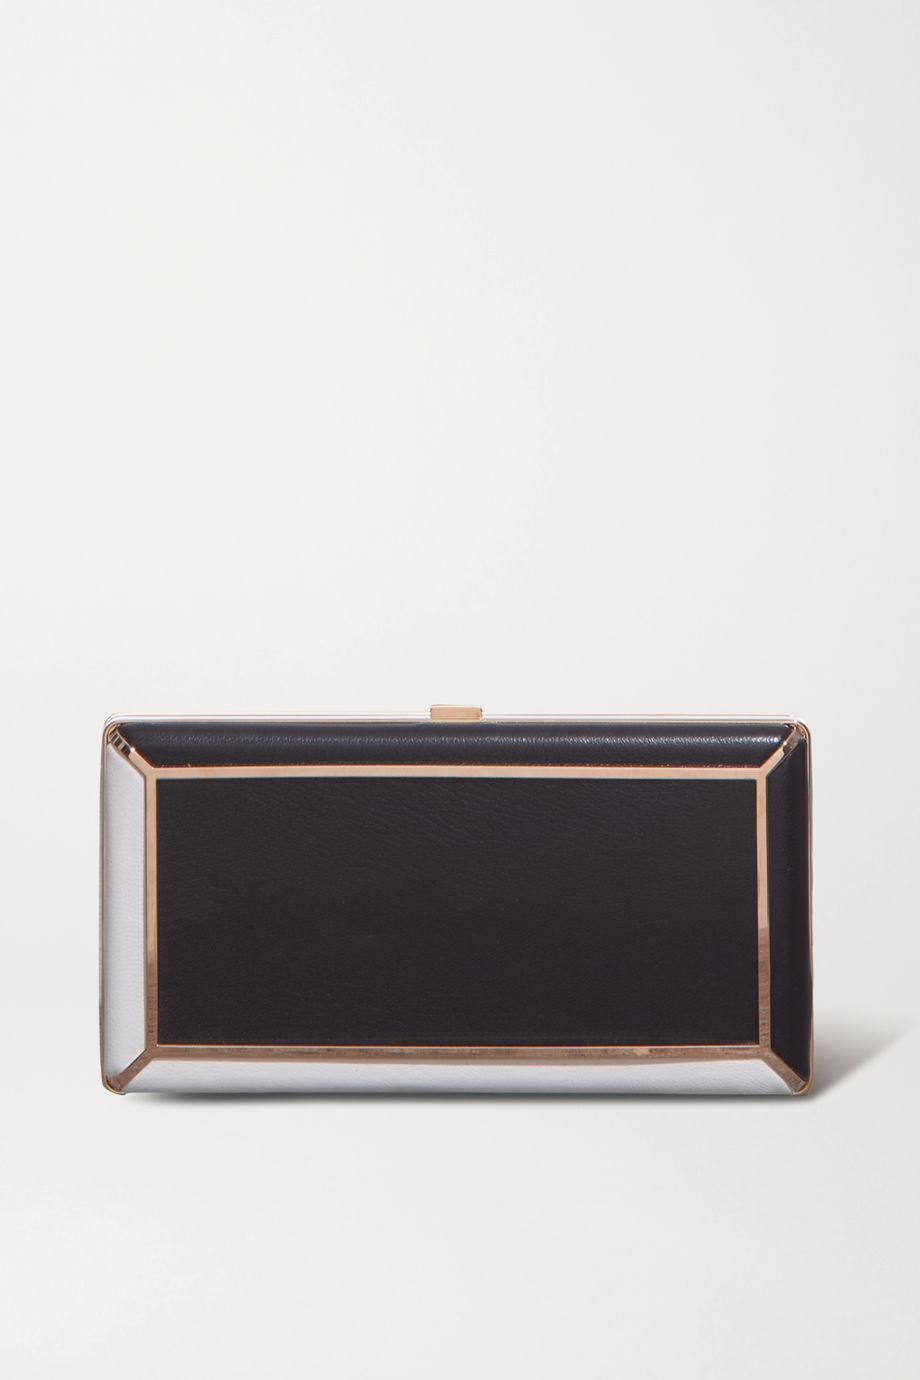 Gabriela Hearst Callas two-tone leather clutch